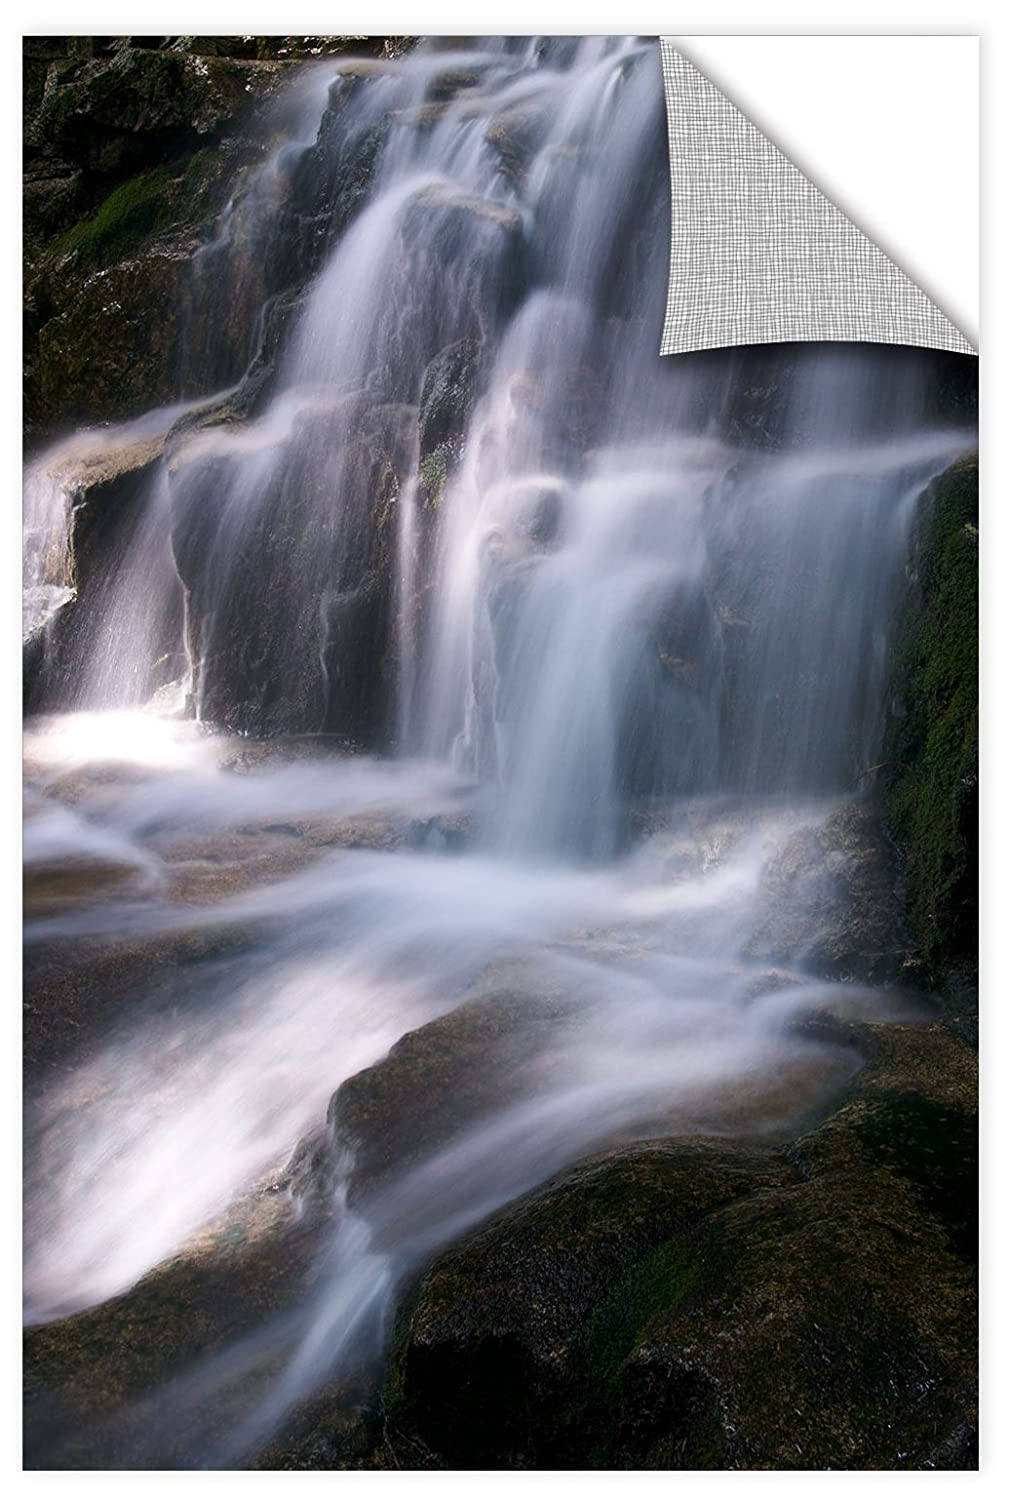 ArtWall James Thompsons Staircase Waterfall 1 Removable Wall Art Mural 24X36